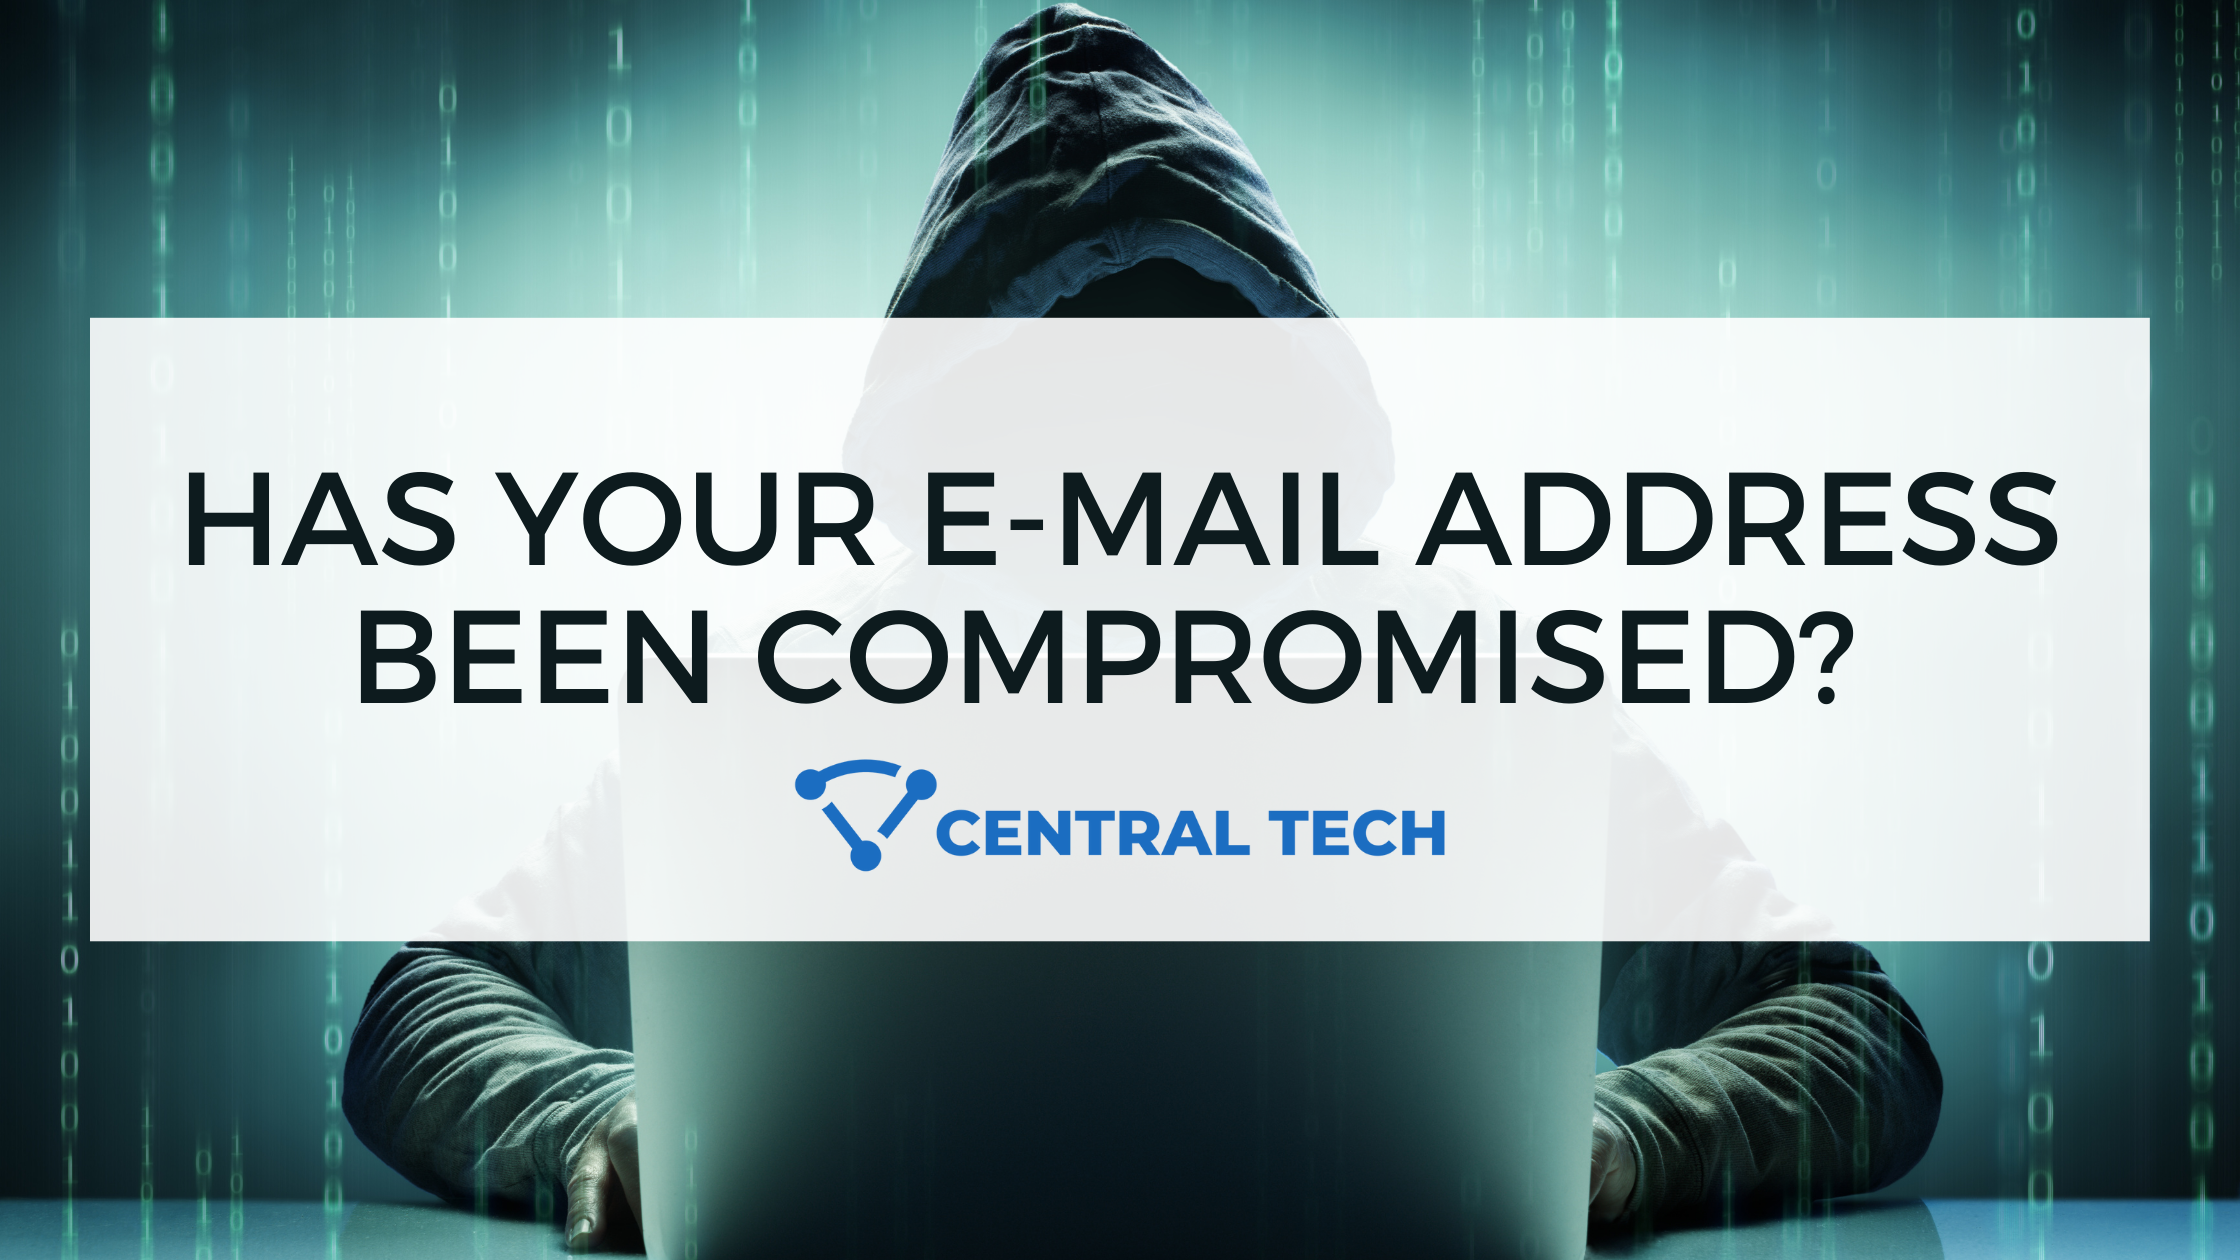 Has Your E-mail Address Been Compromised?